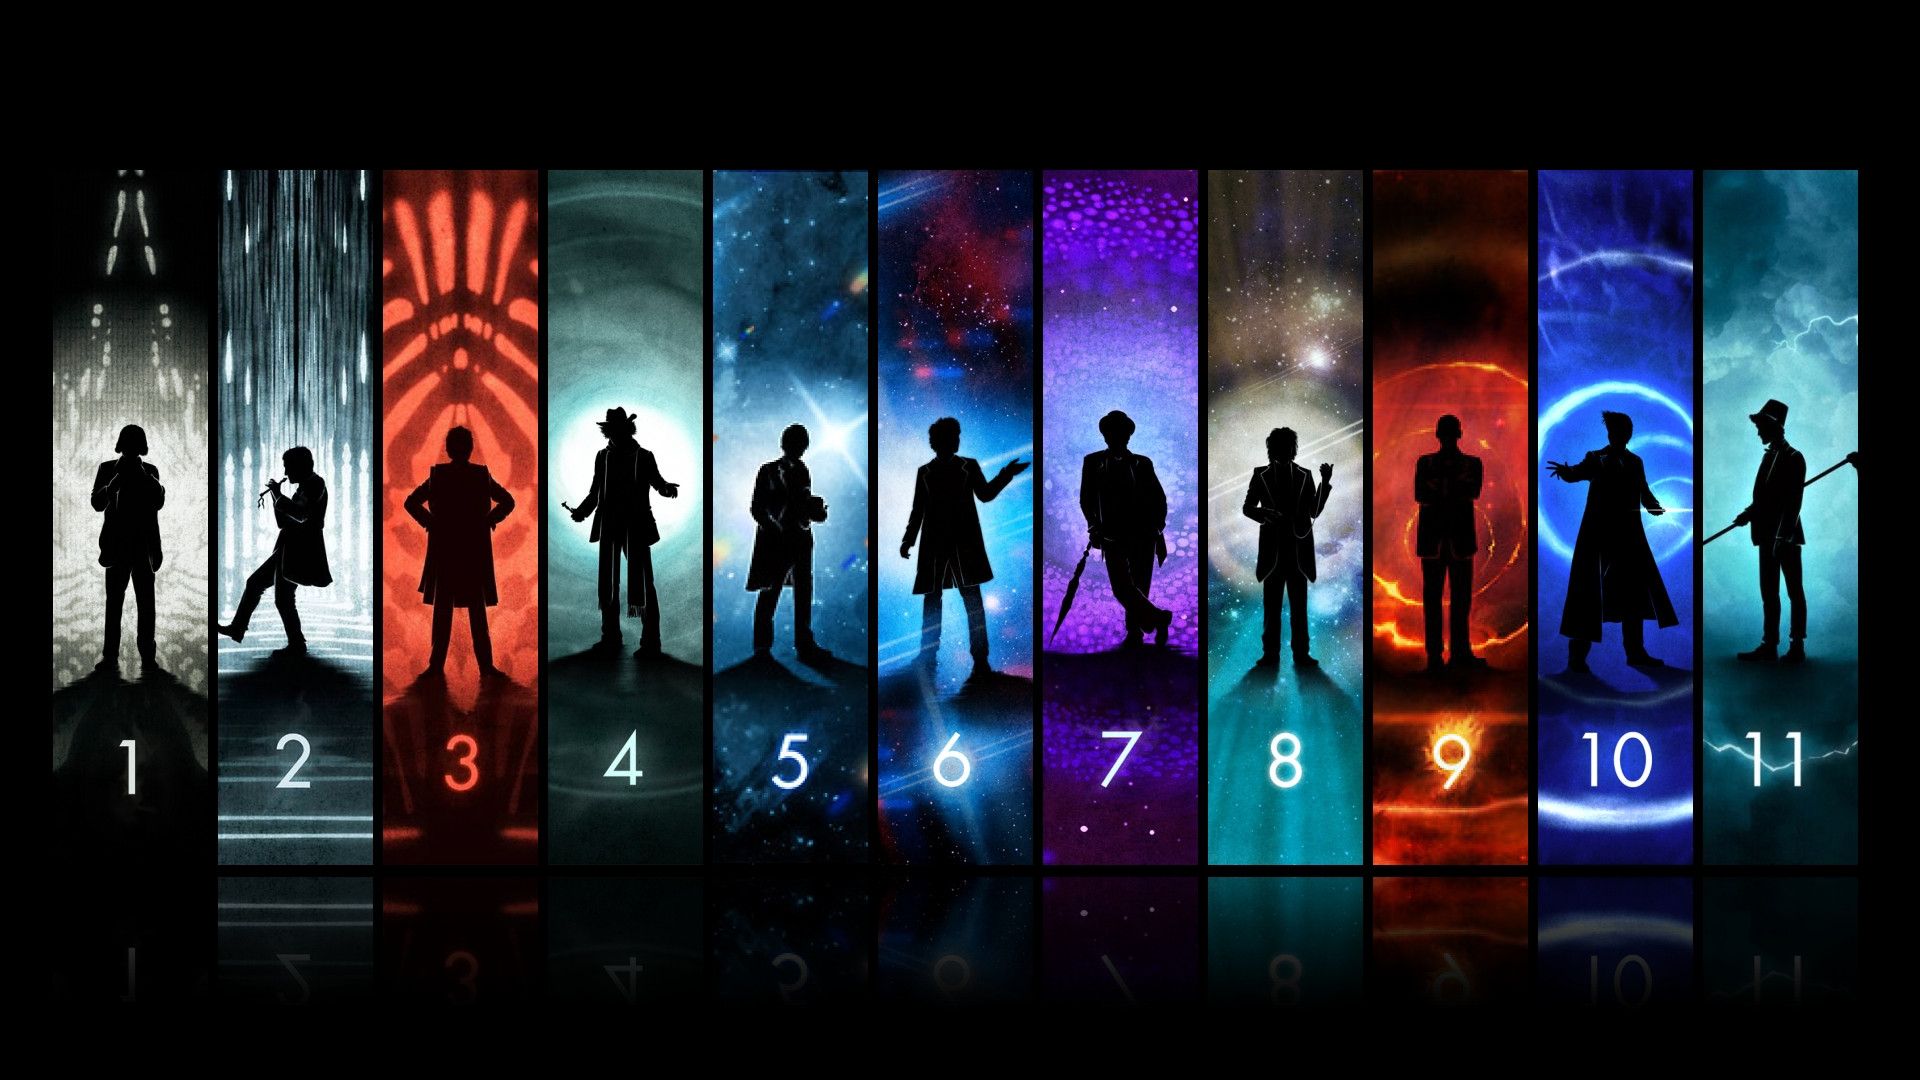 doctor who 12th doctor wallpaper wallpapersafari. Black Bedroom Furniture Sets. Home Design Ideas